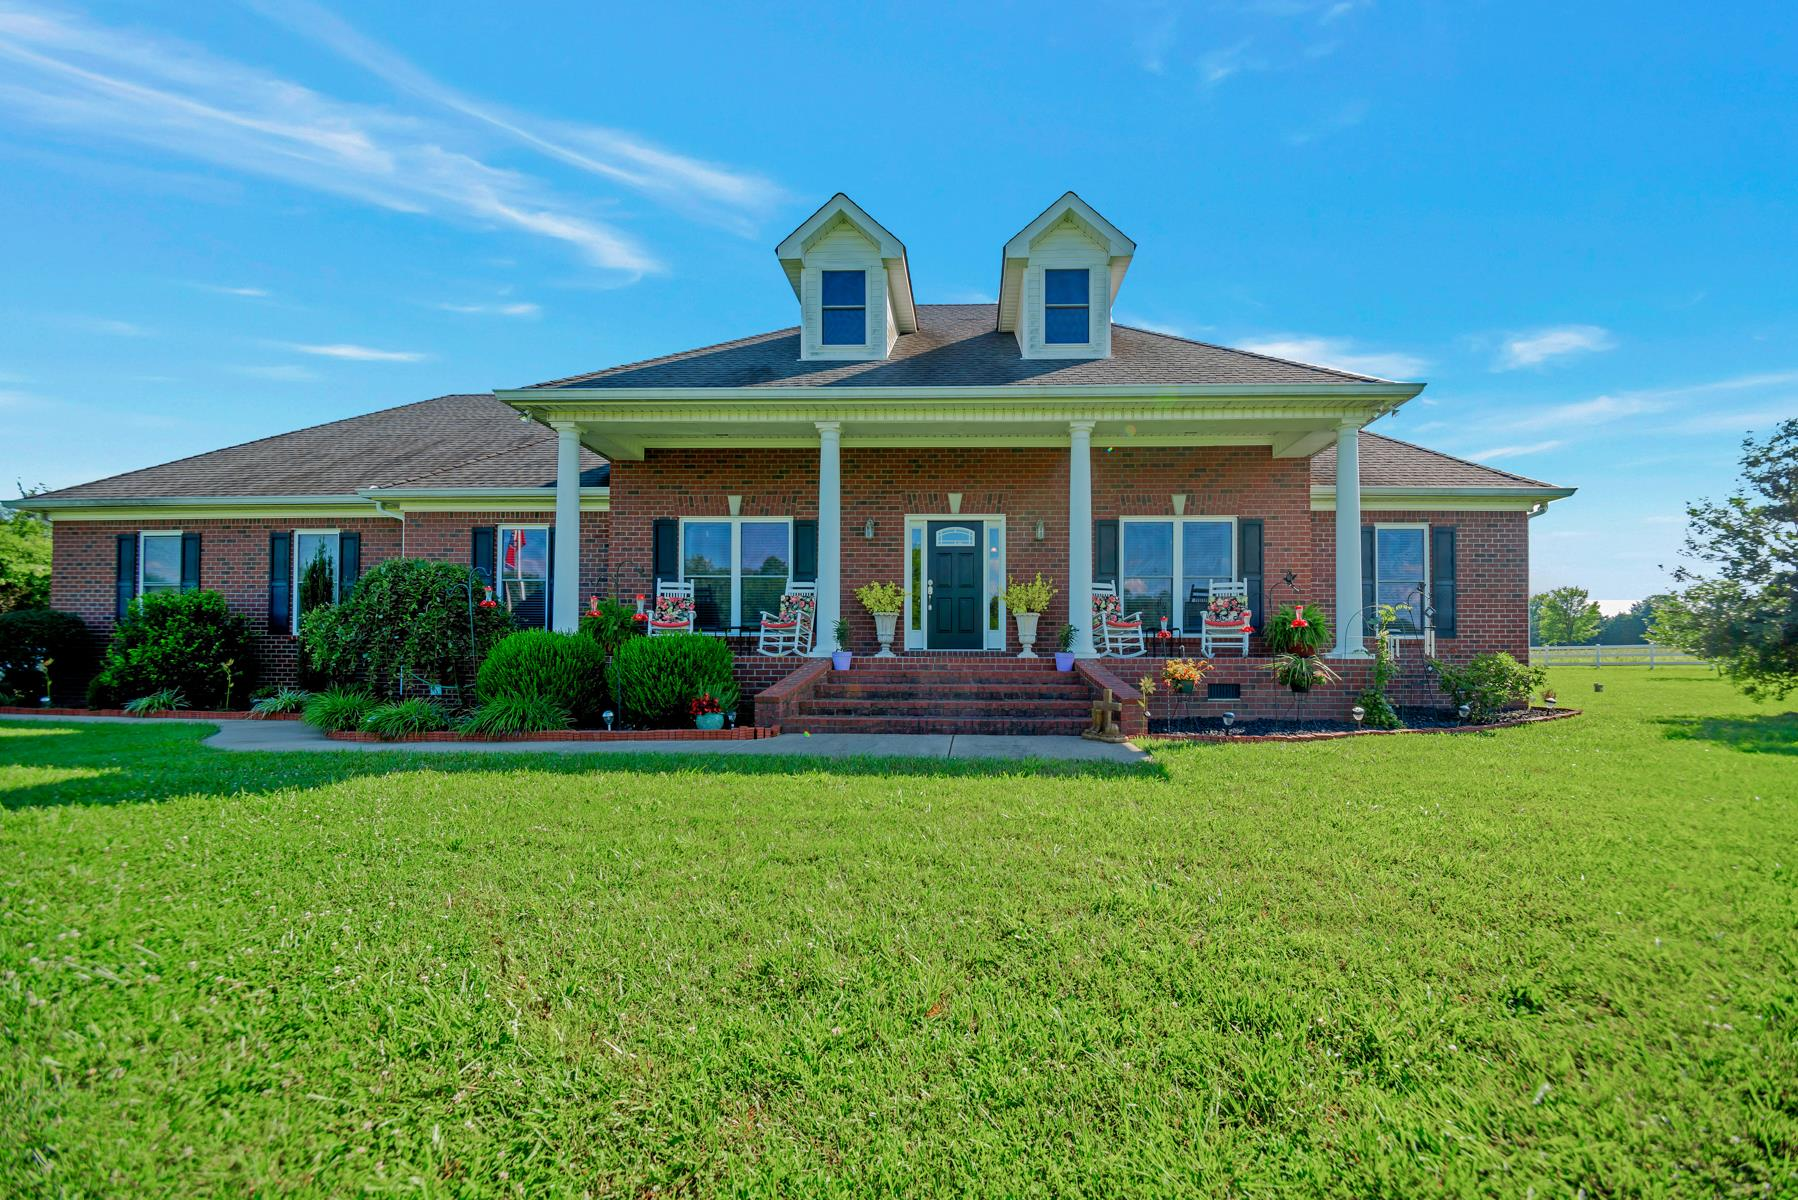 11237 Newtown Rd, Unionville, TN 37180 - Unionville, TN real estate listing